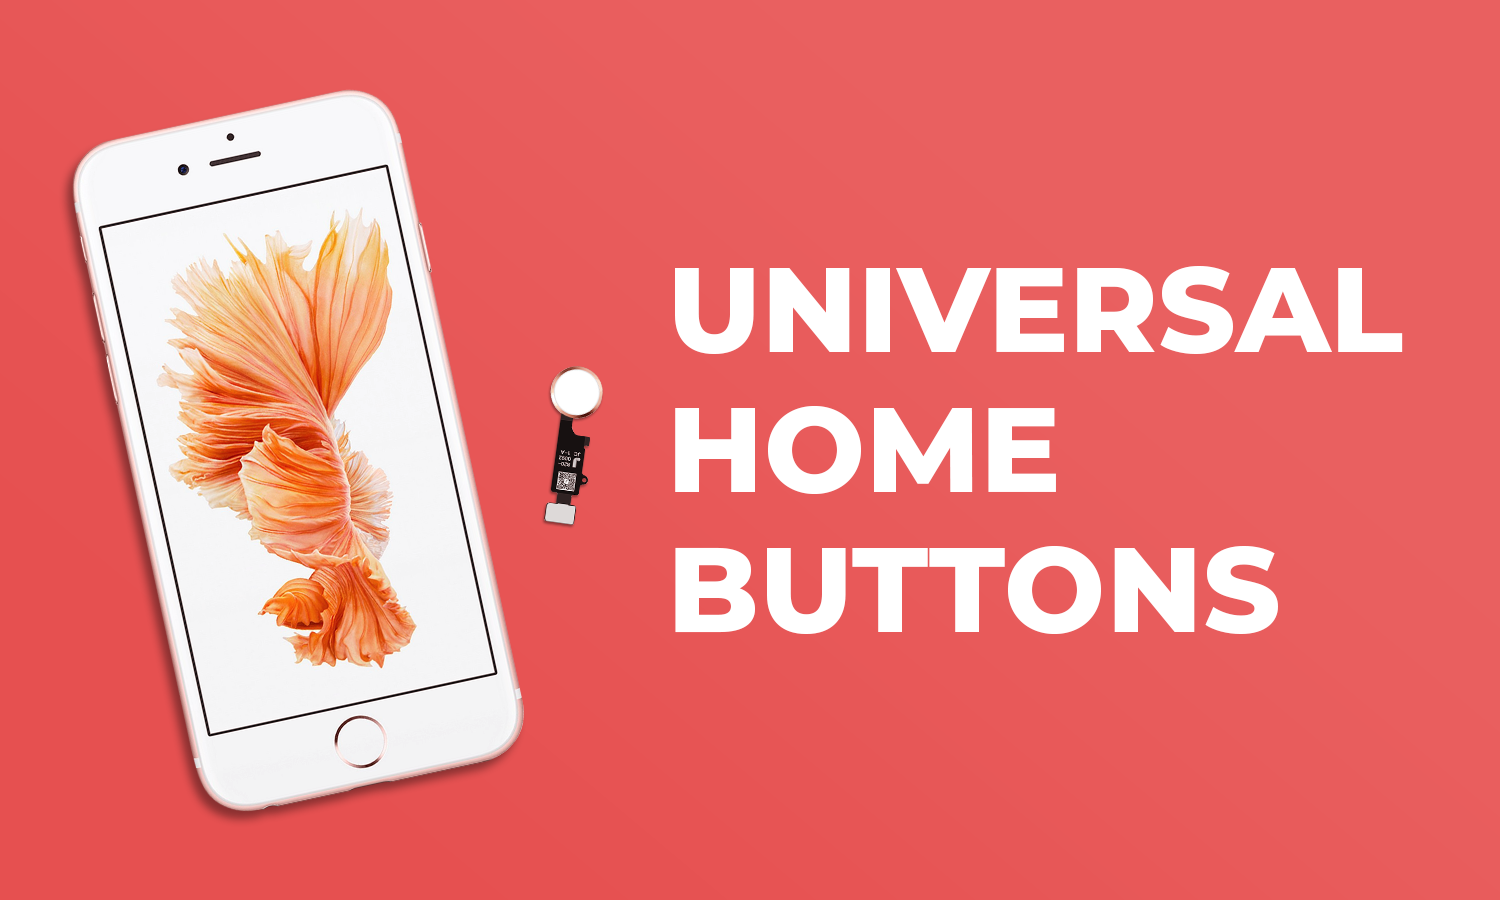 What Are Universal Home Buttons?